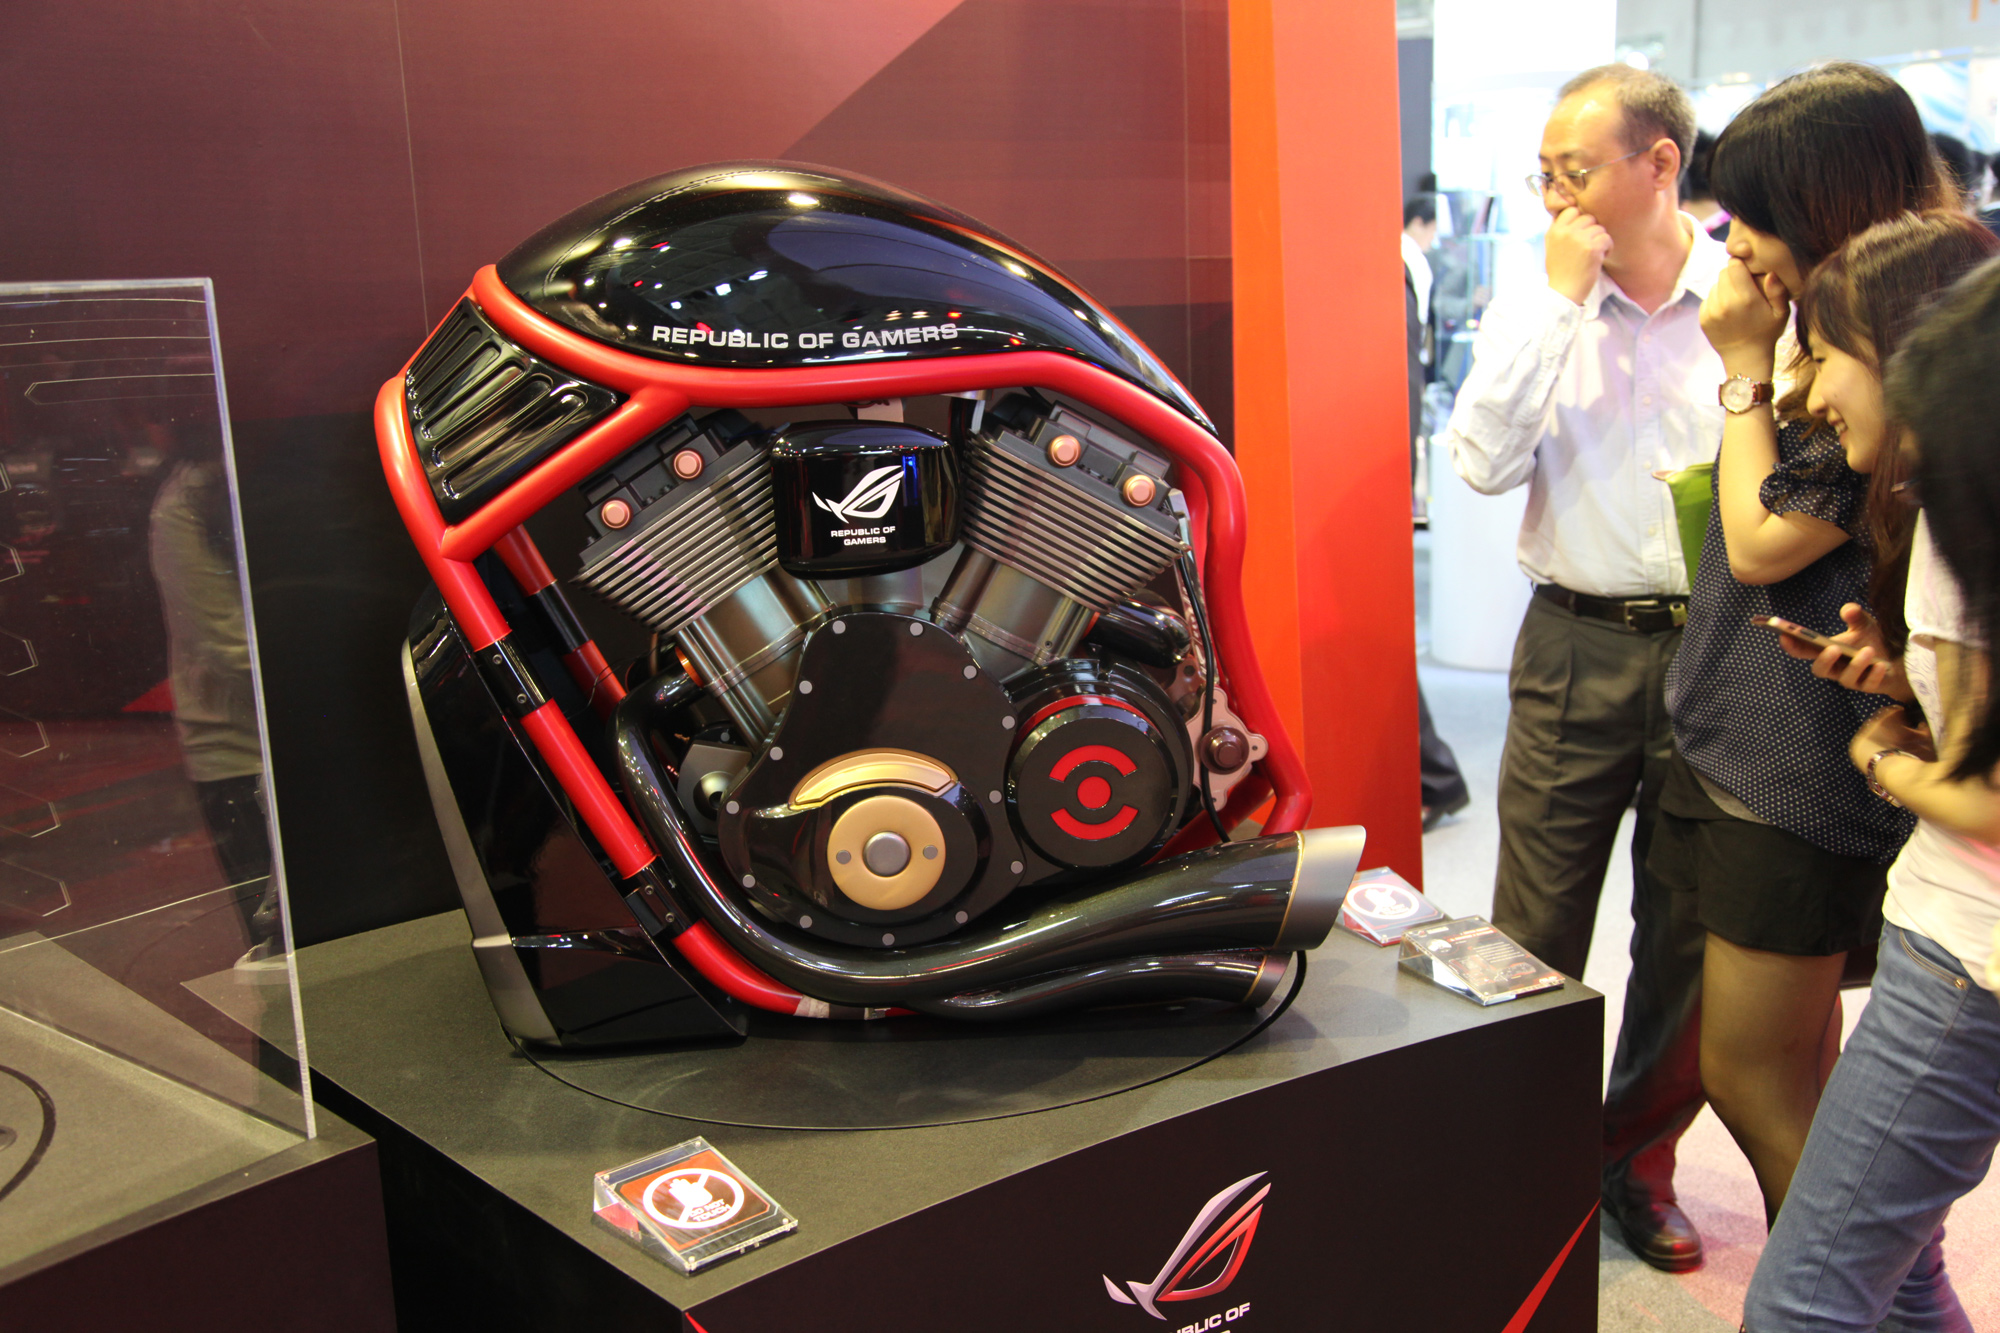 computex 2015 asus rog announces new generation of gaming gear rog republic of gamers global. Black Bedroom Furniture Sets. Home Design Ideas